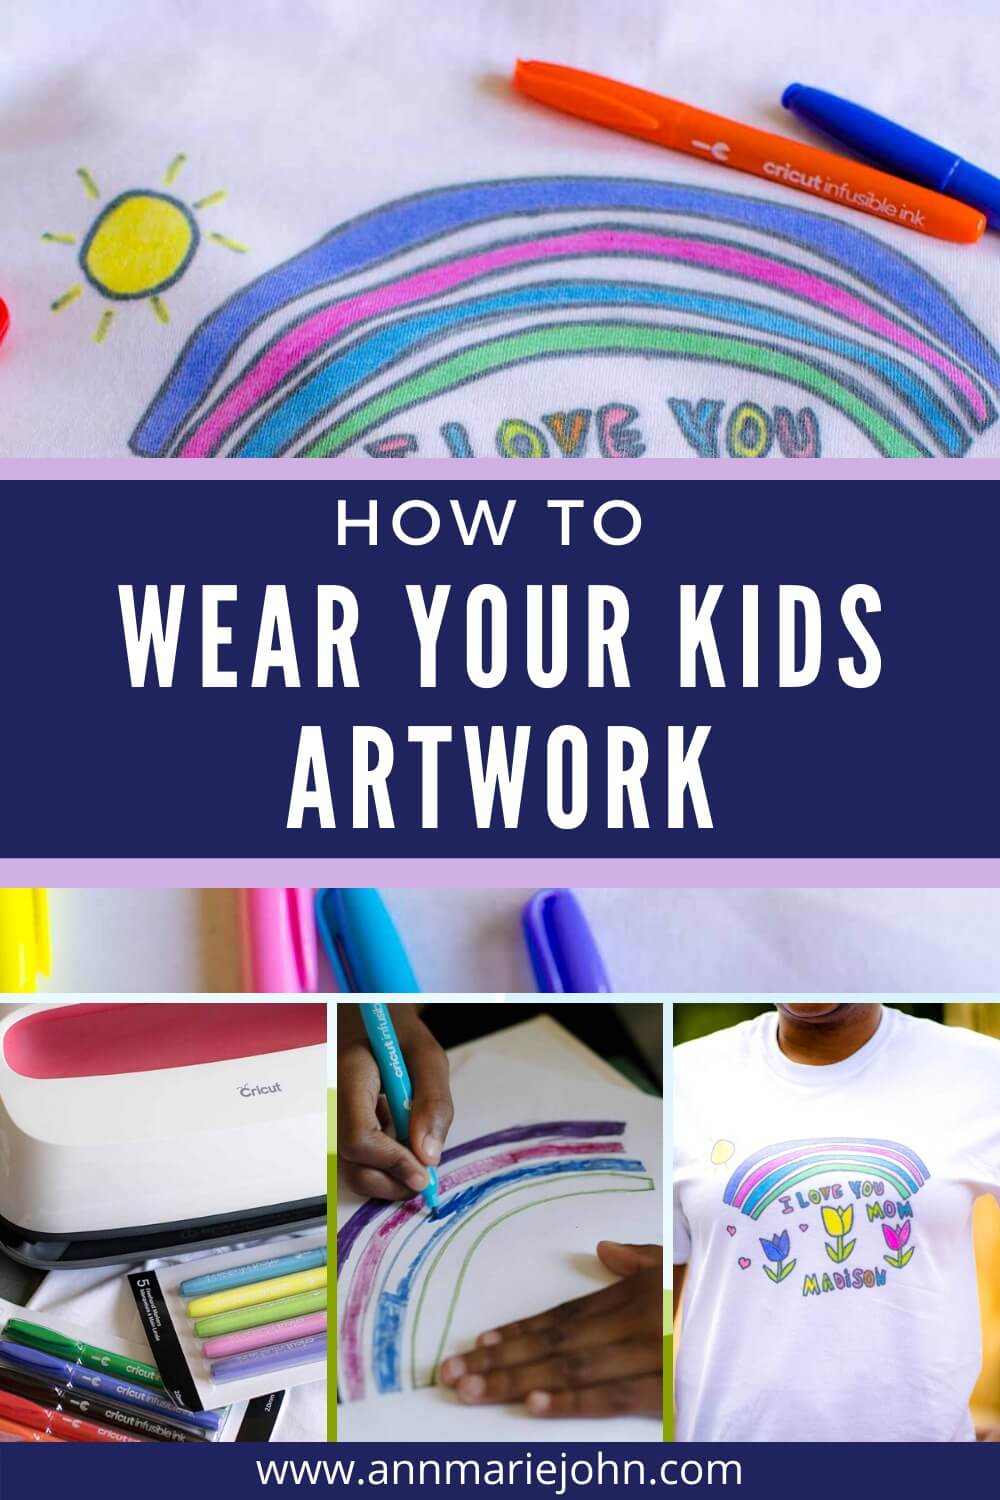 How to Wear Your Kids Artwork